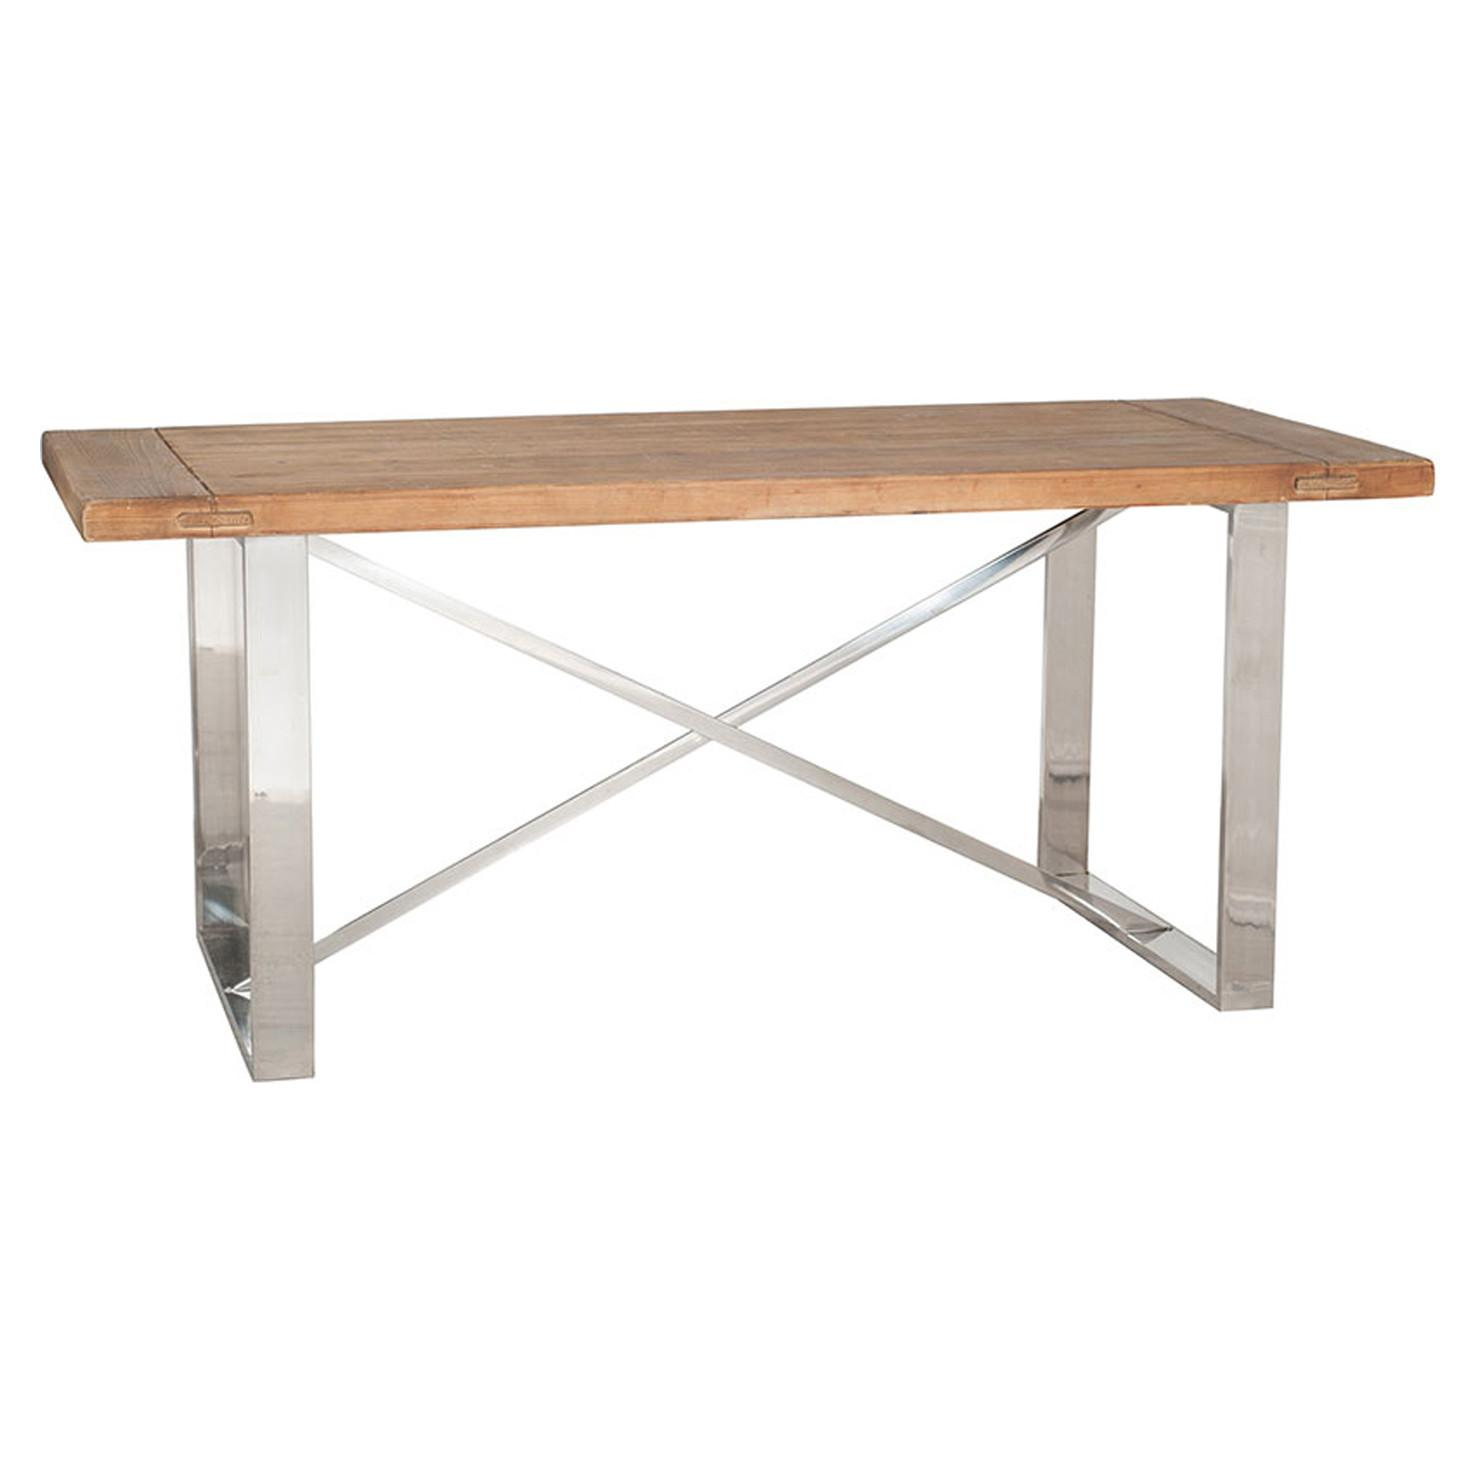 Natural Fir Wood Stainless Steel Dining Table Achica